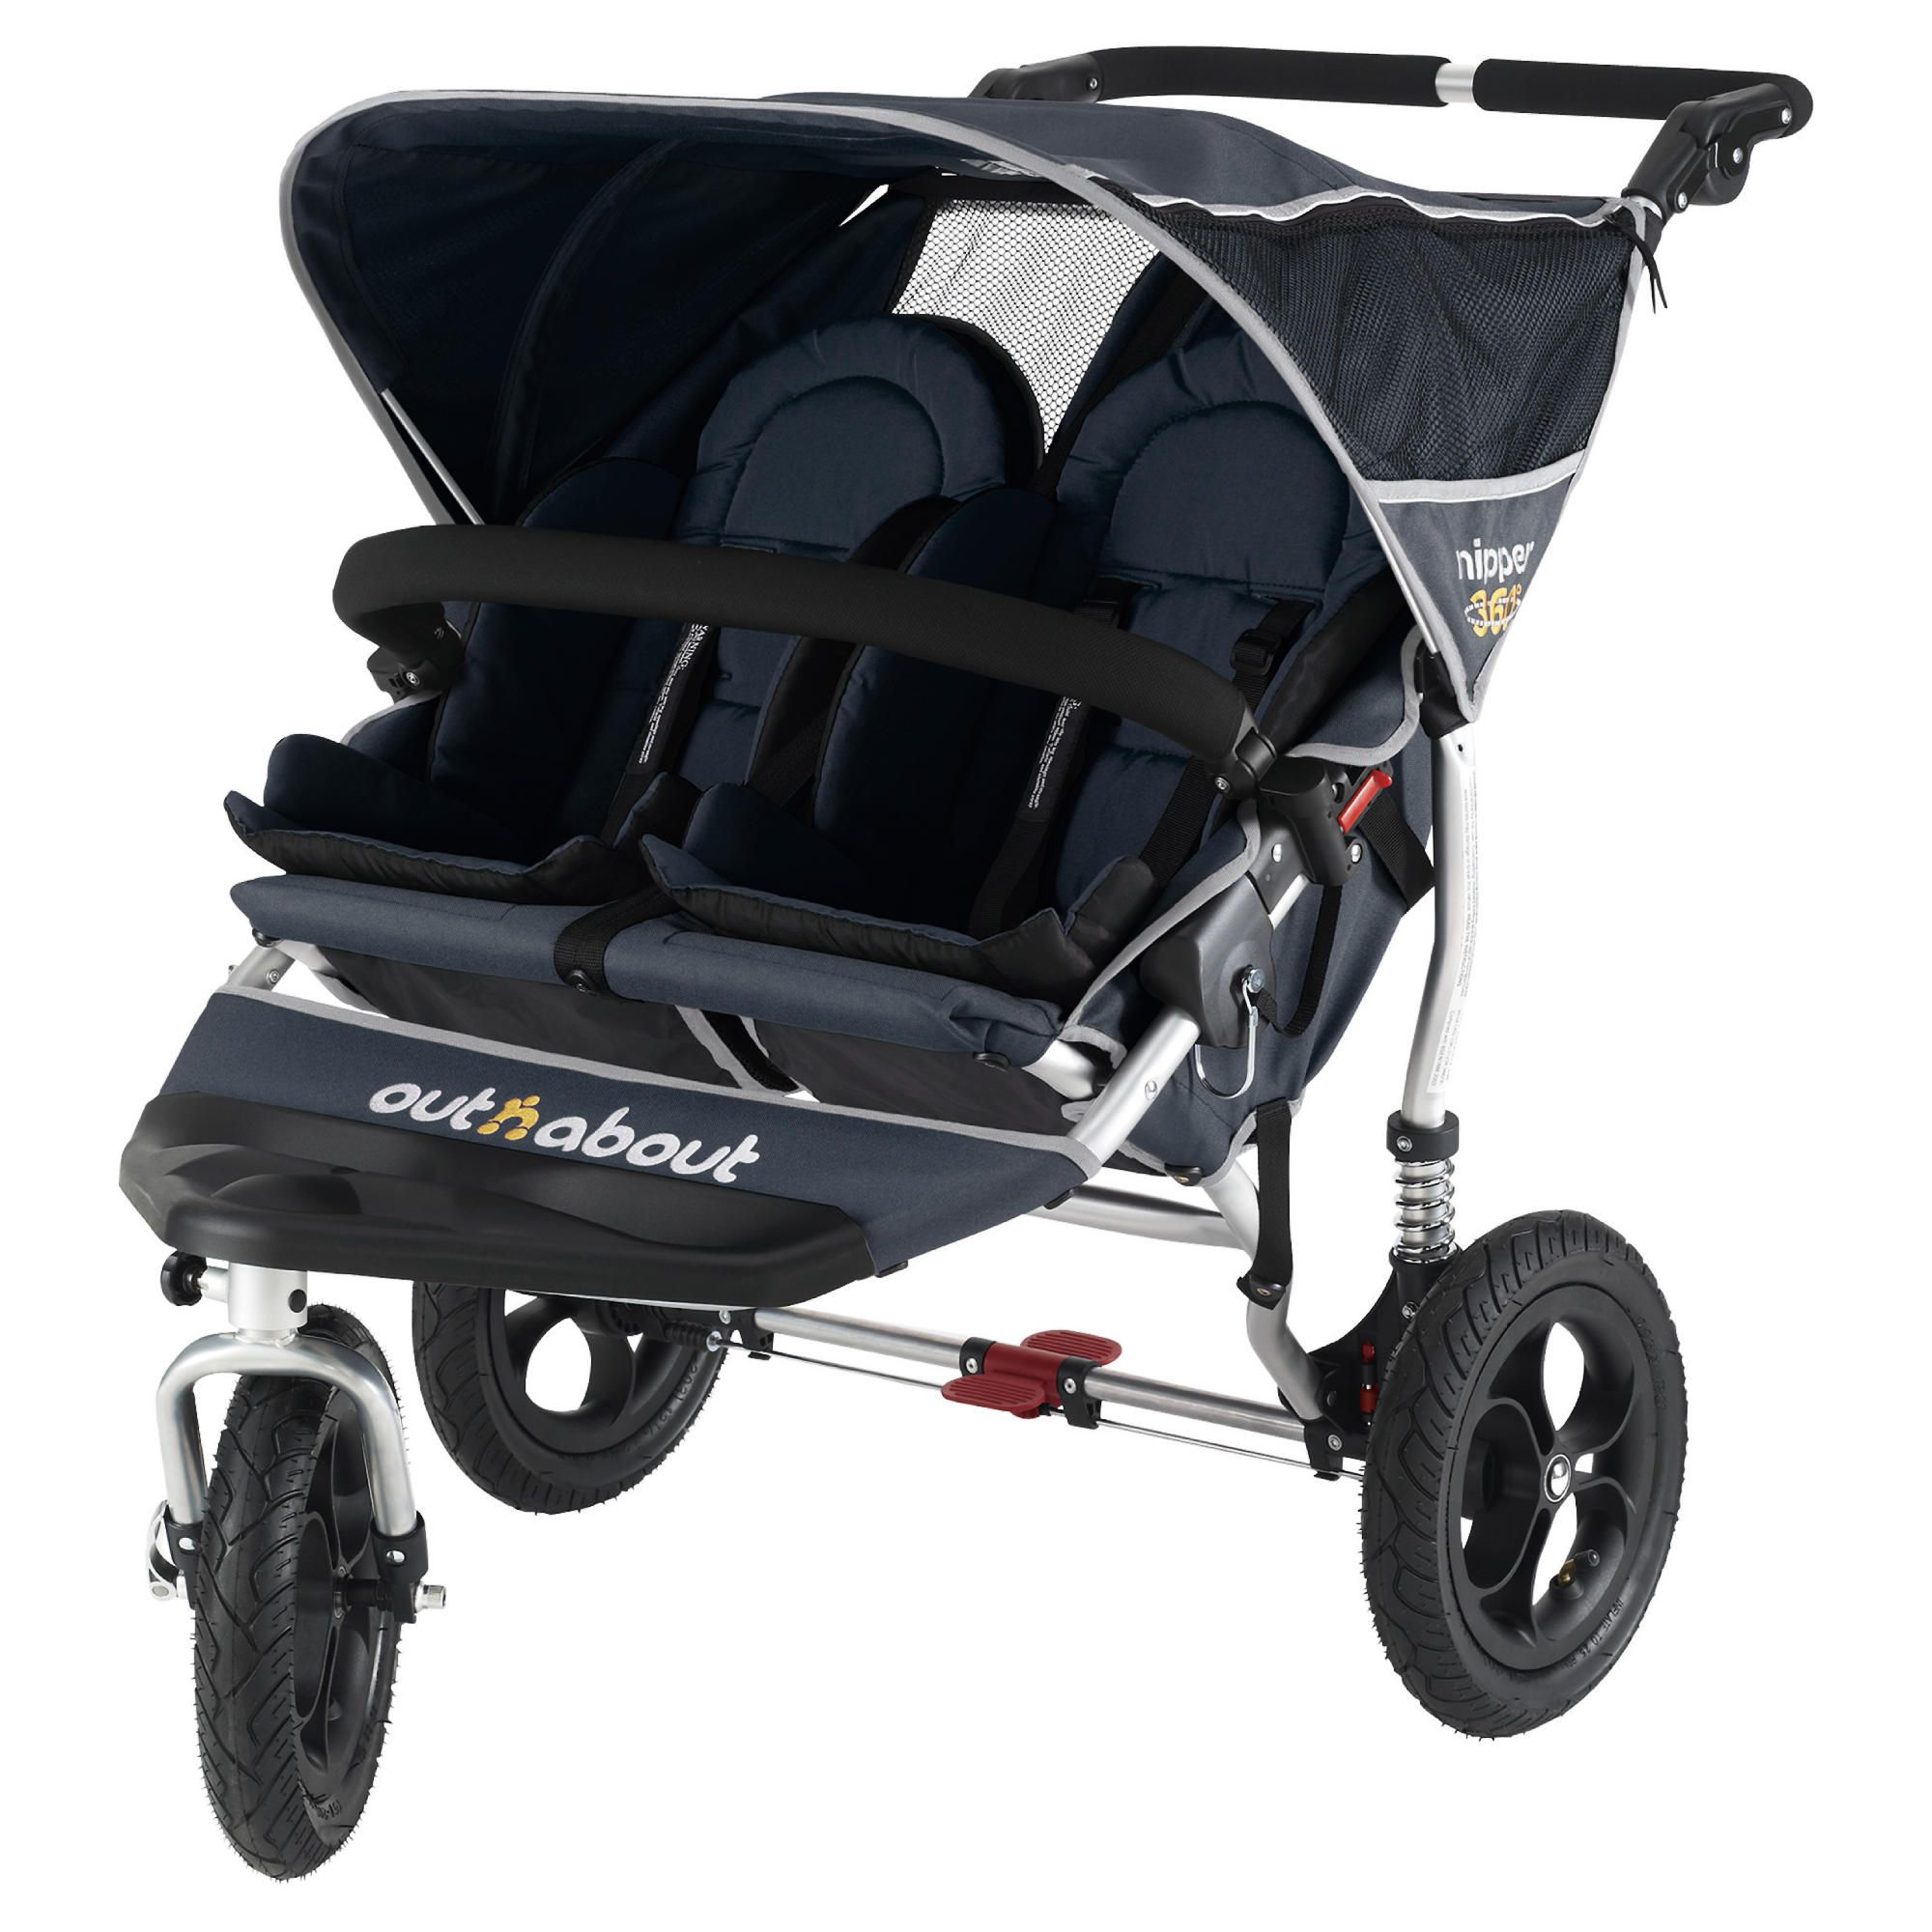 Out 'n' About V2 Nipper 360, 3 wheeler Double pushchair, Navy at Tesco Direct